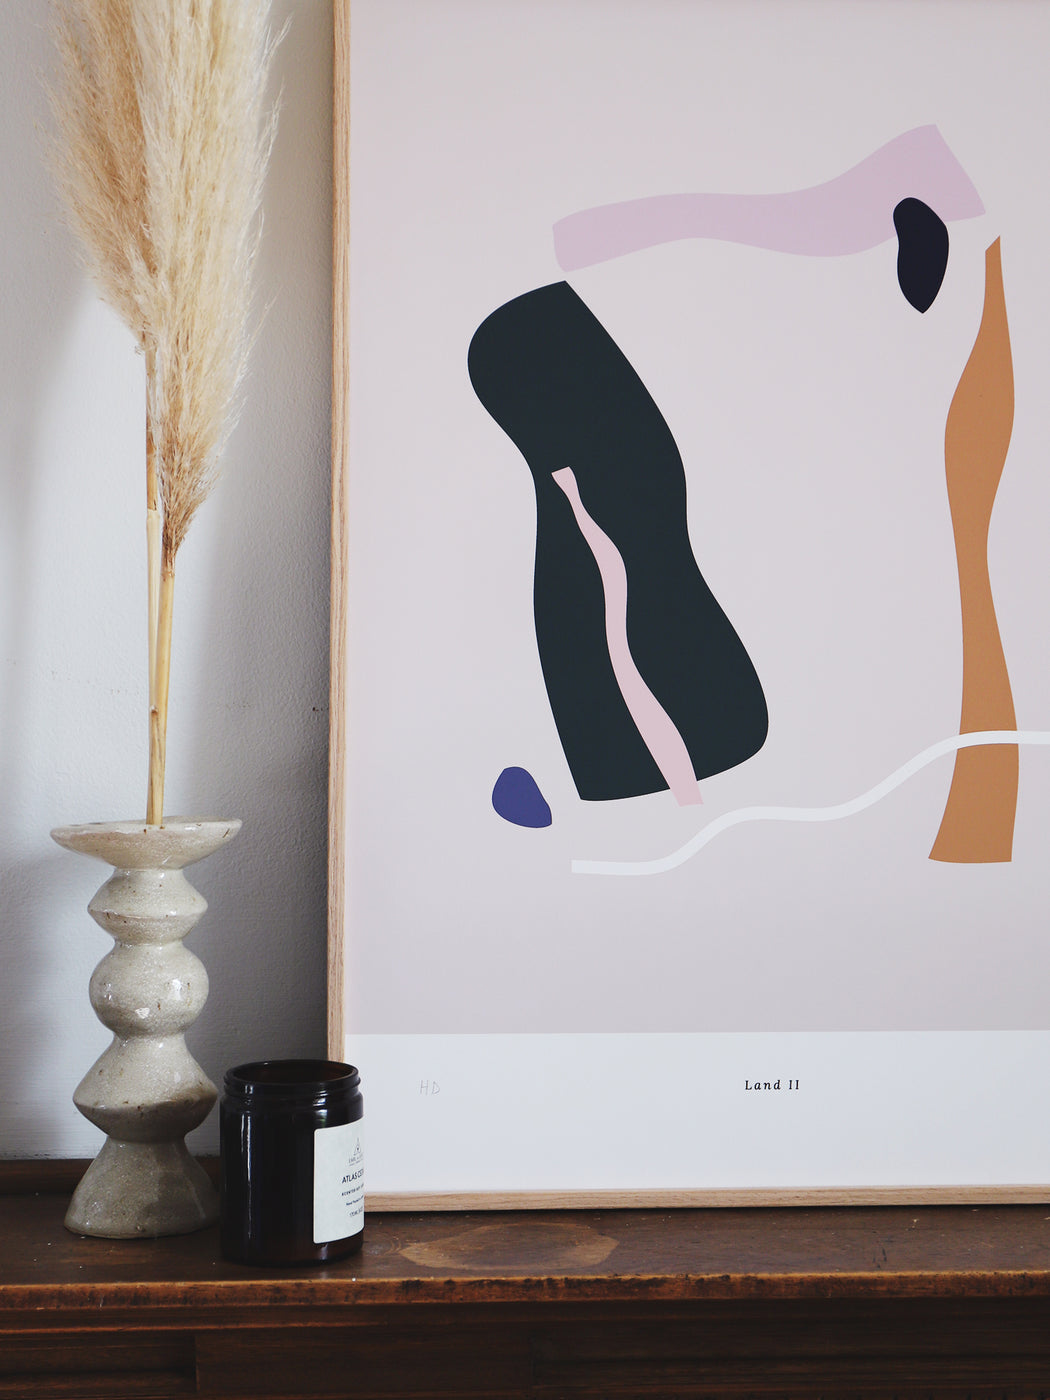 High quality giclée fine art print on 210gsm smooth matt paper.  Abstract print with a design inspired by landscapes and topography.